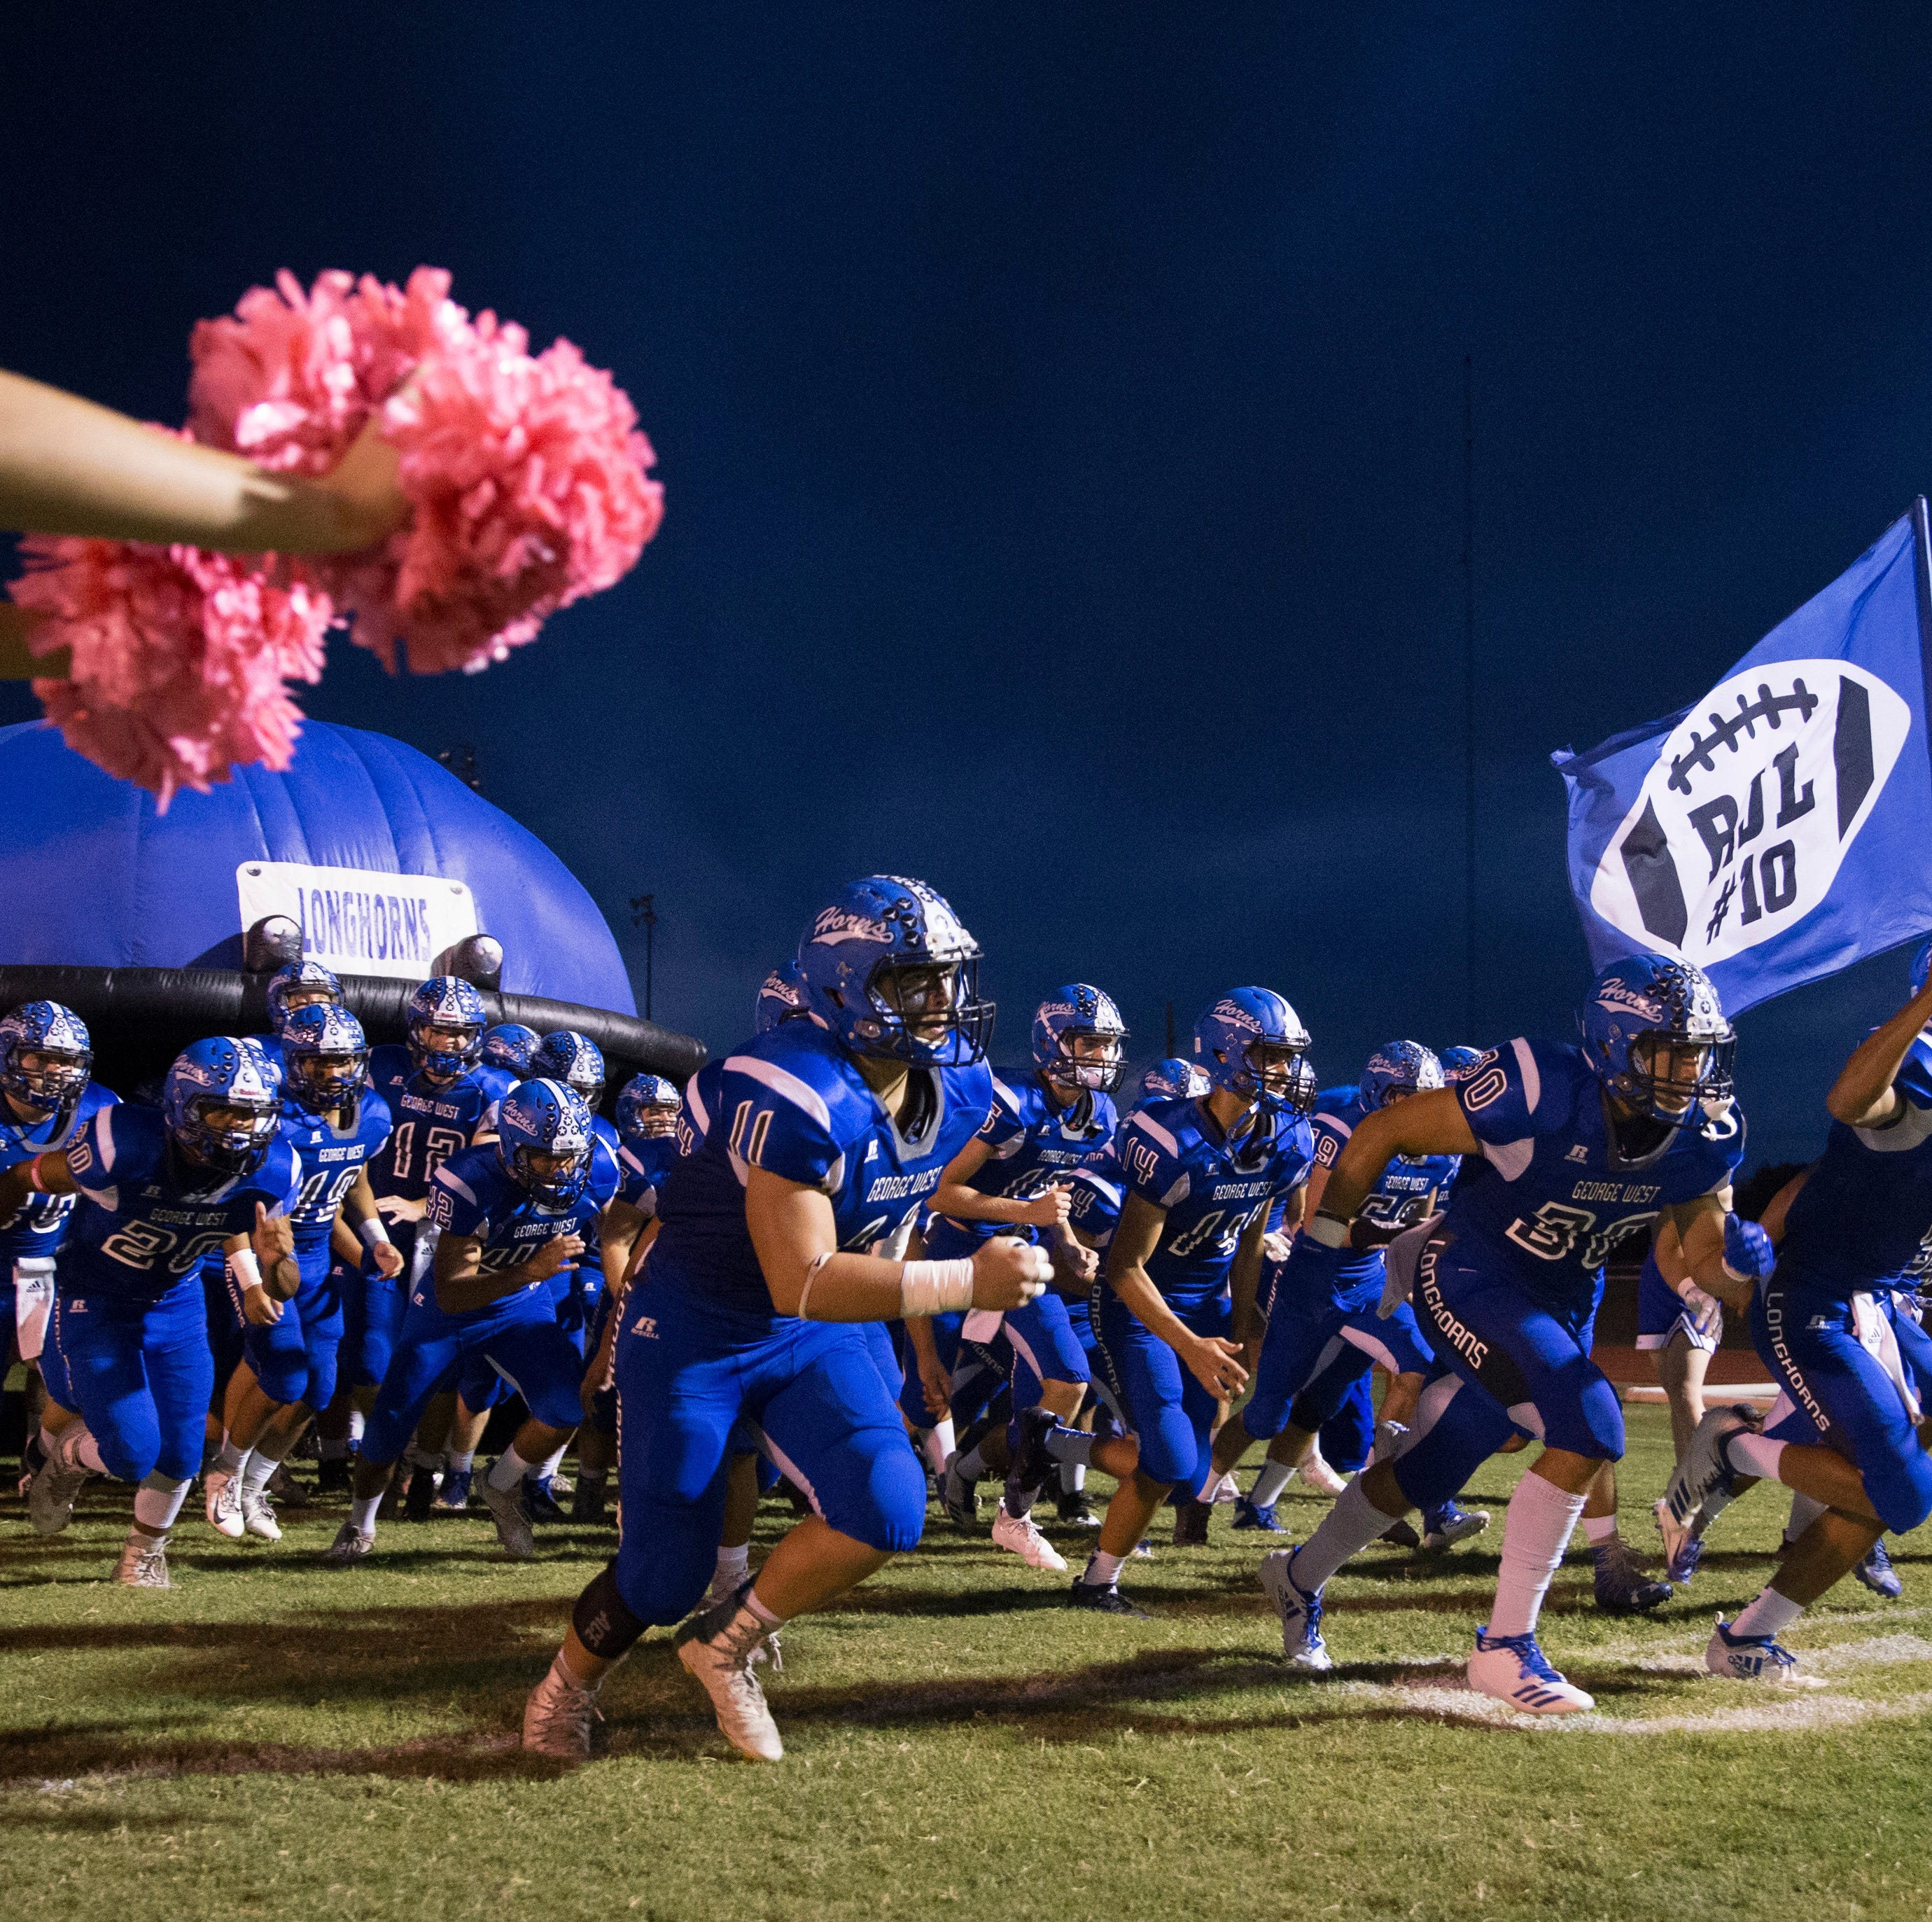 South Texas High School Football: Who will make the deepest playoff run?